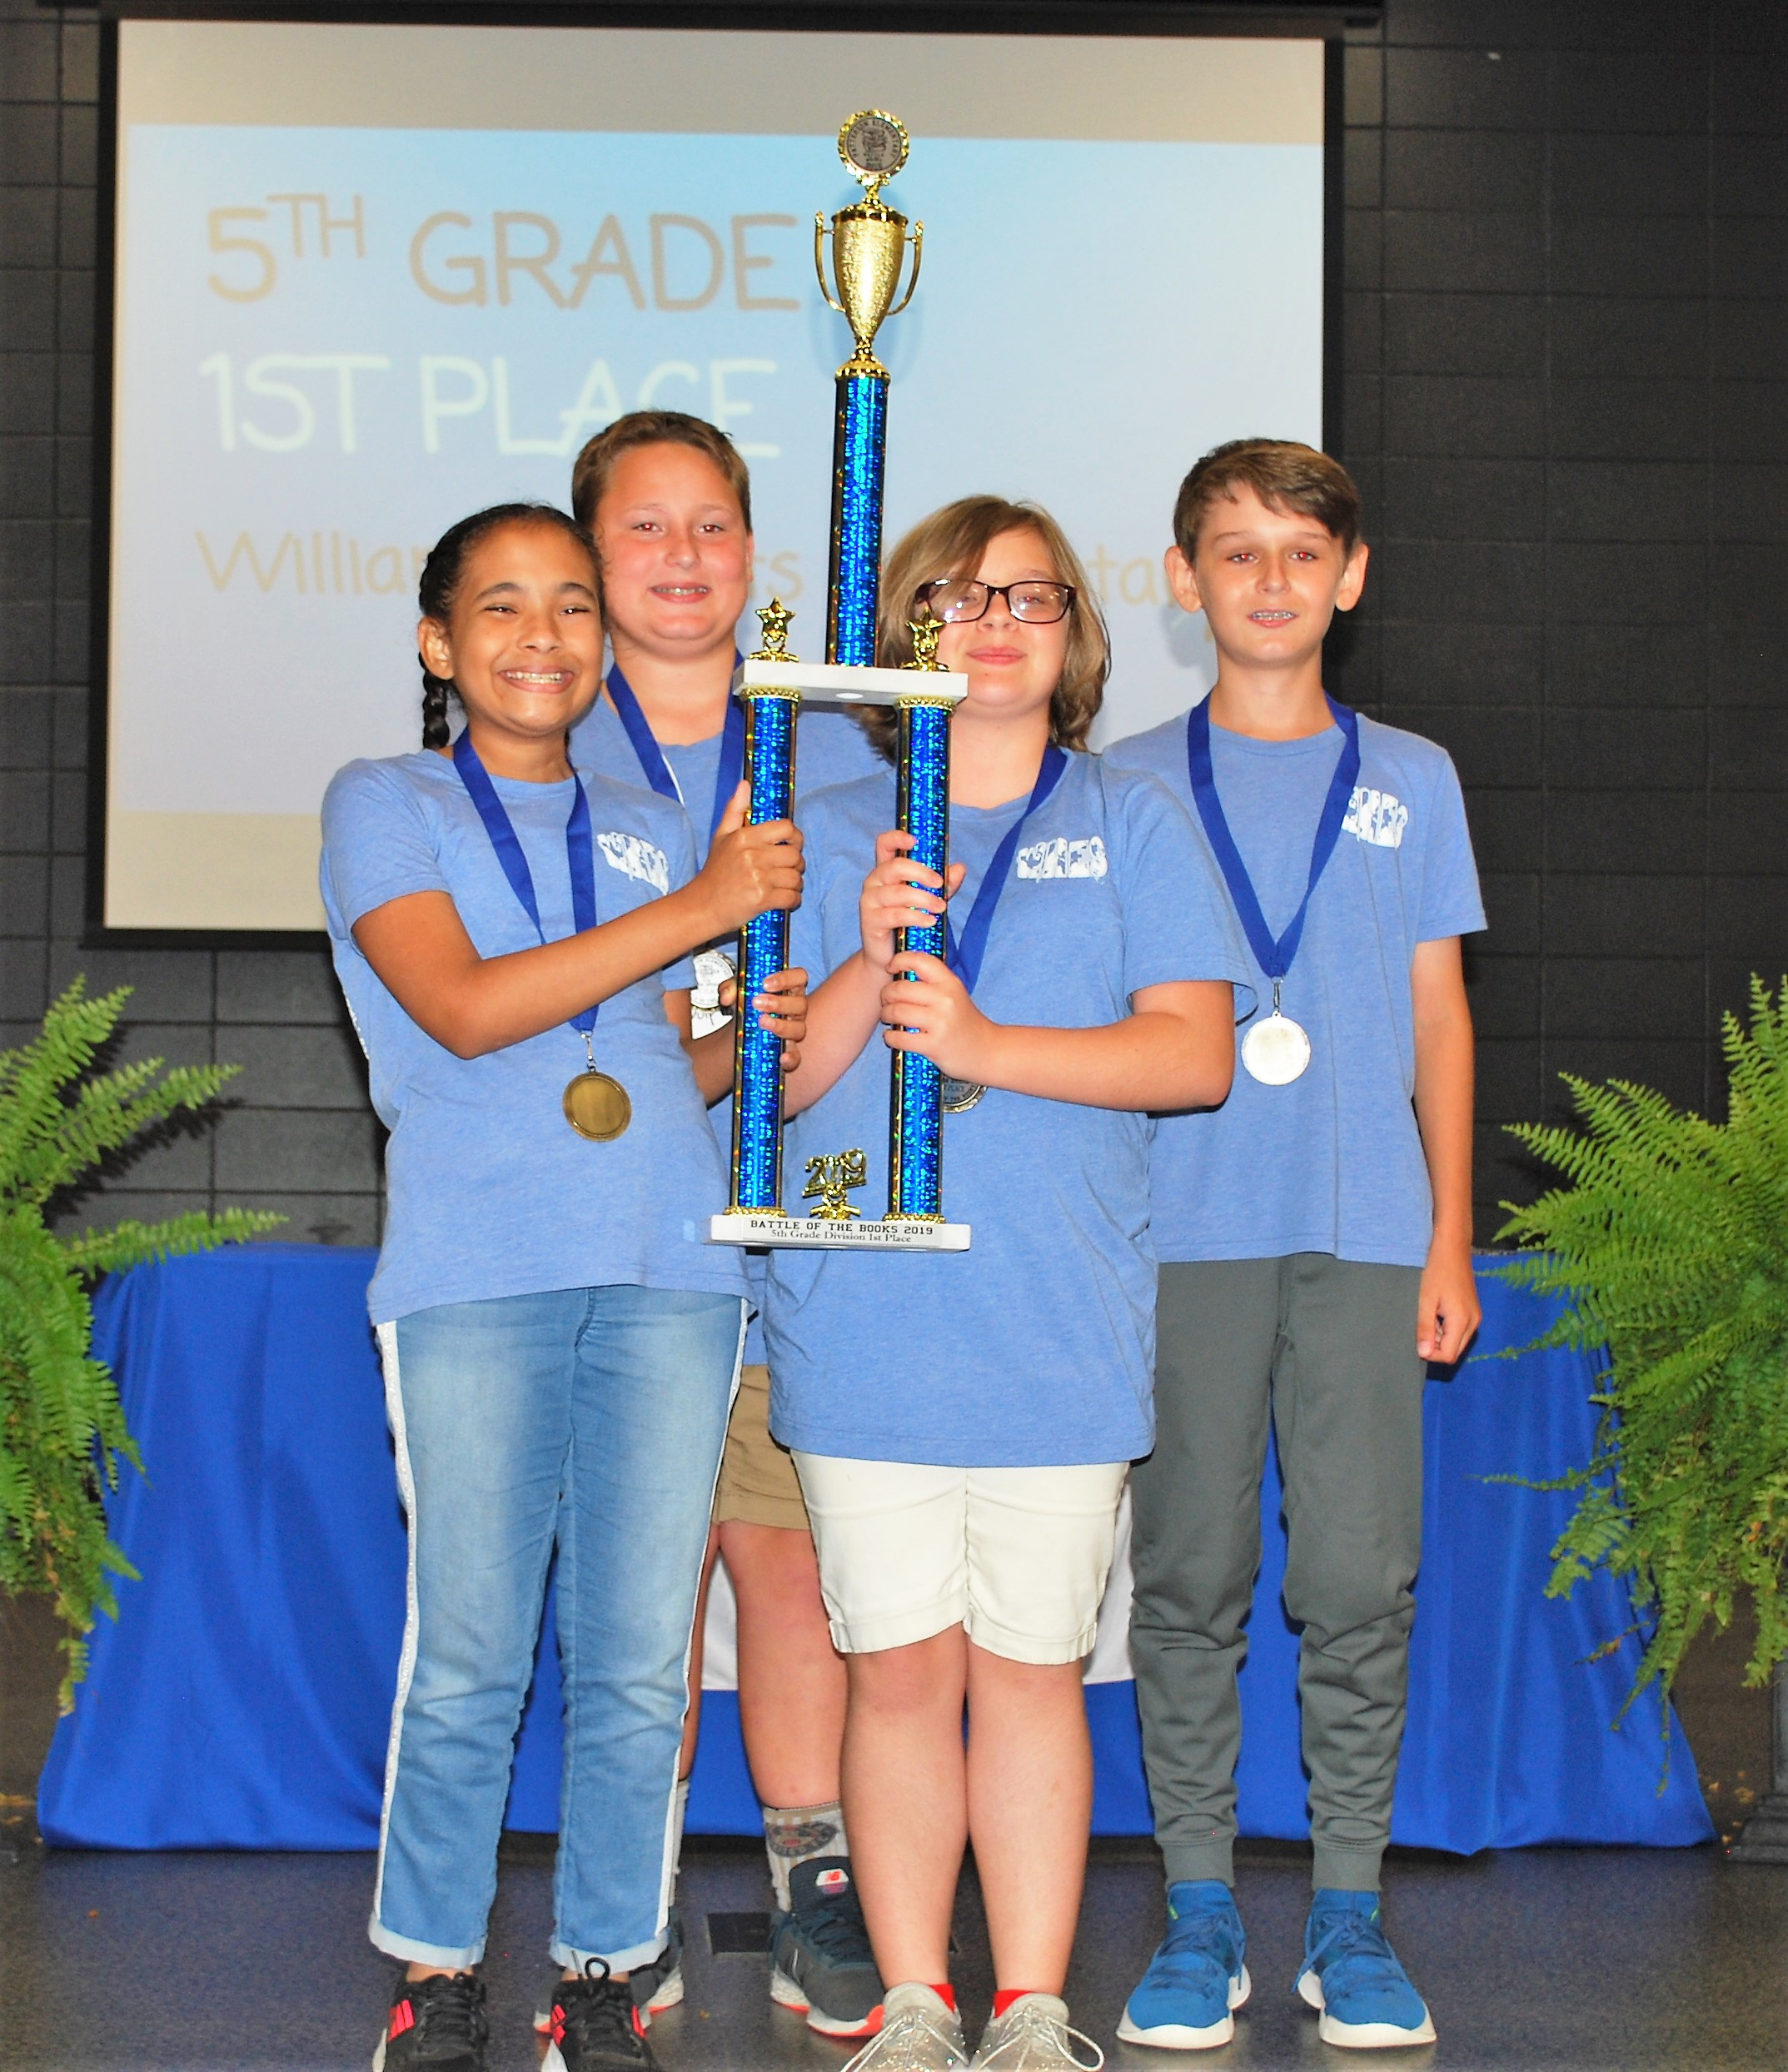 5th Grade 1st Place: William Heights Elementary